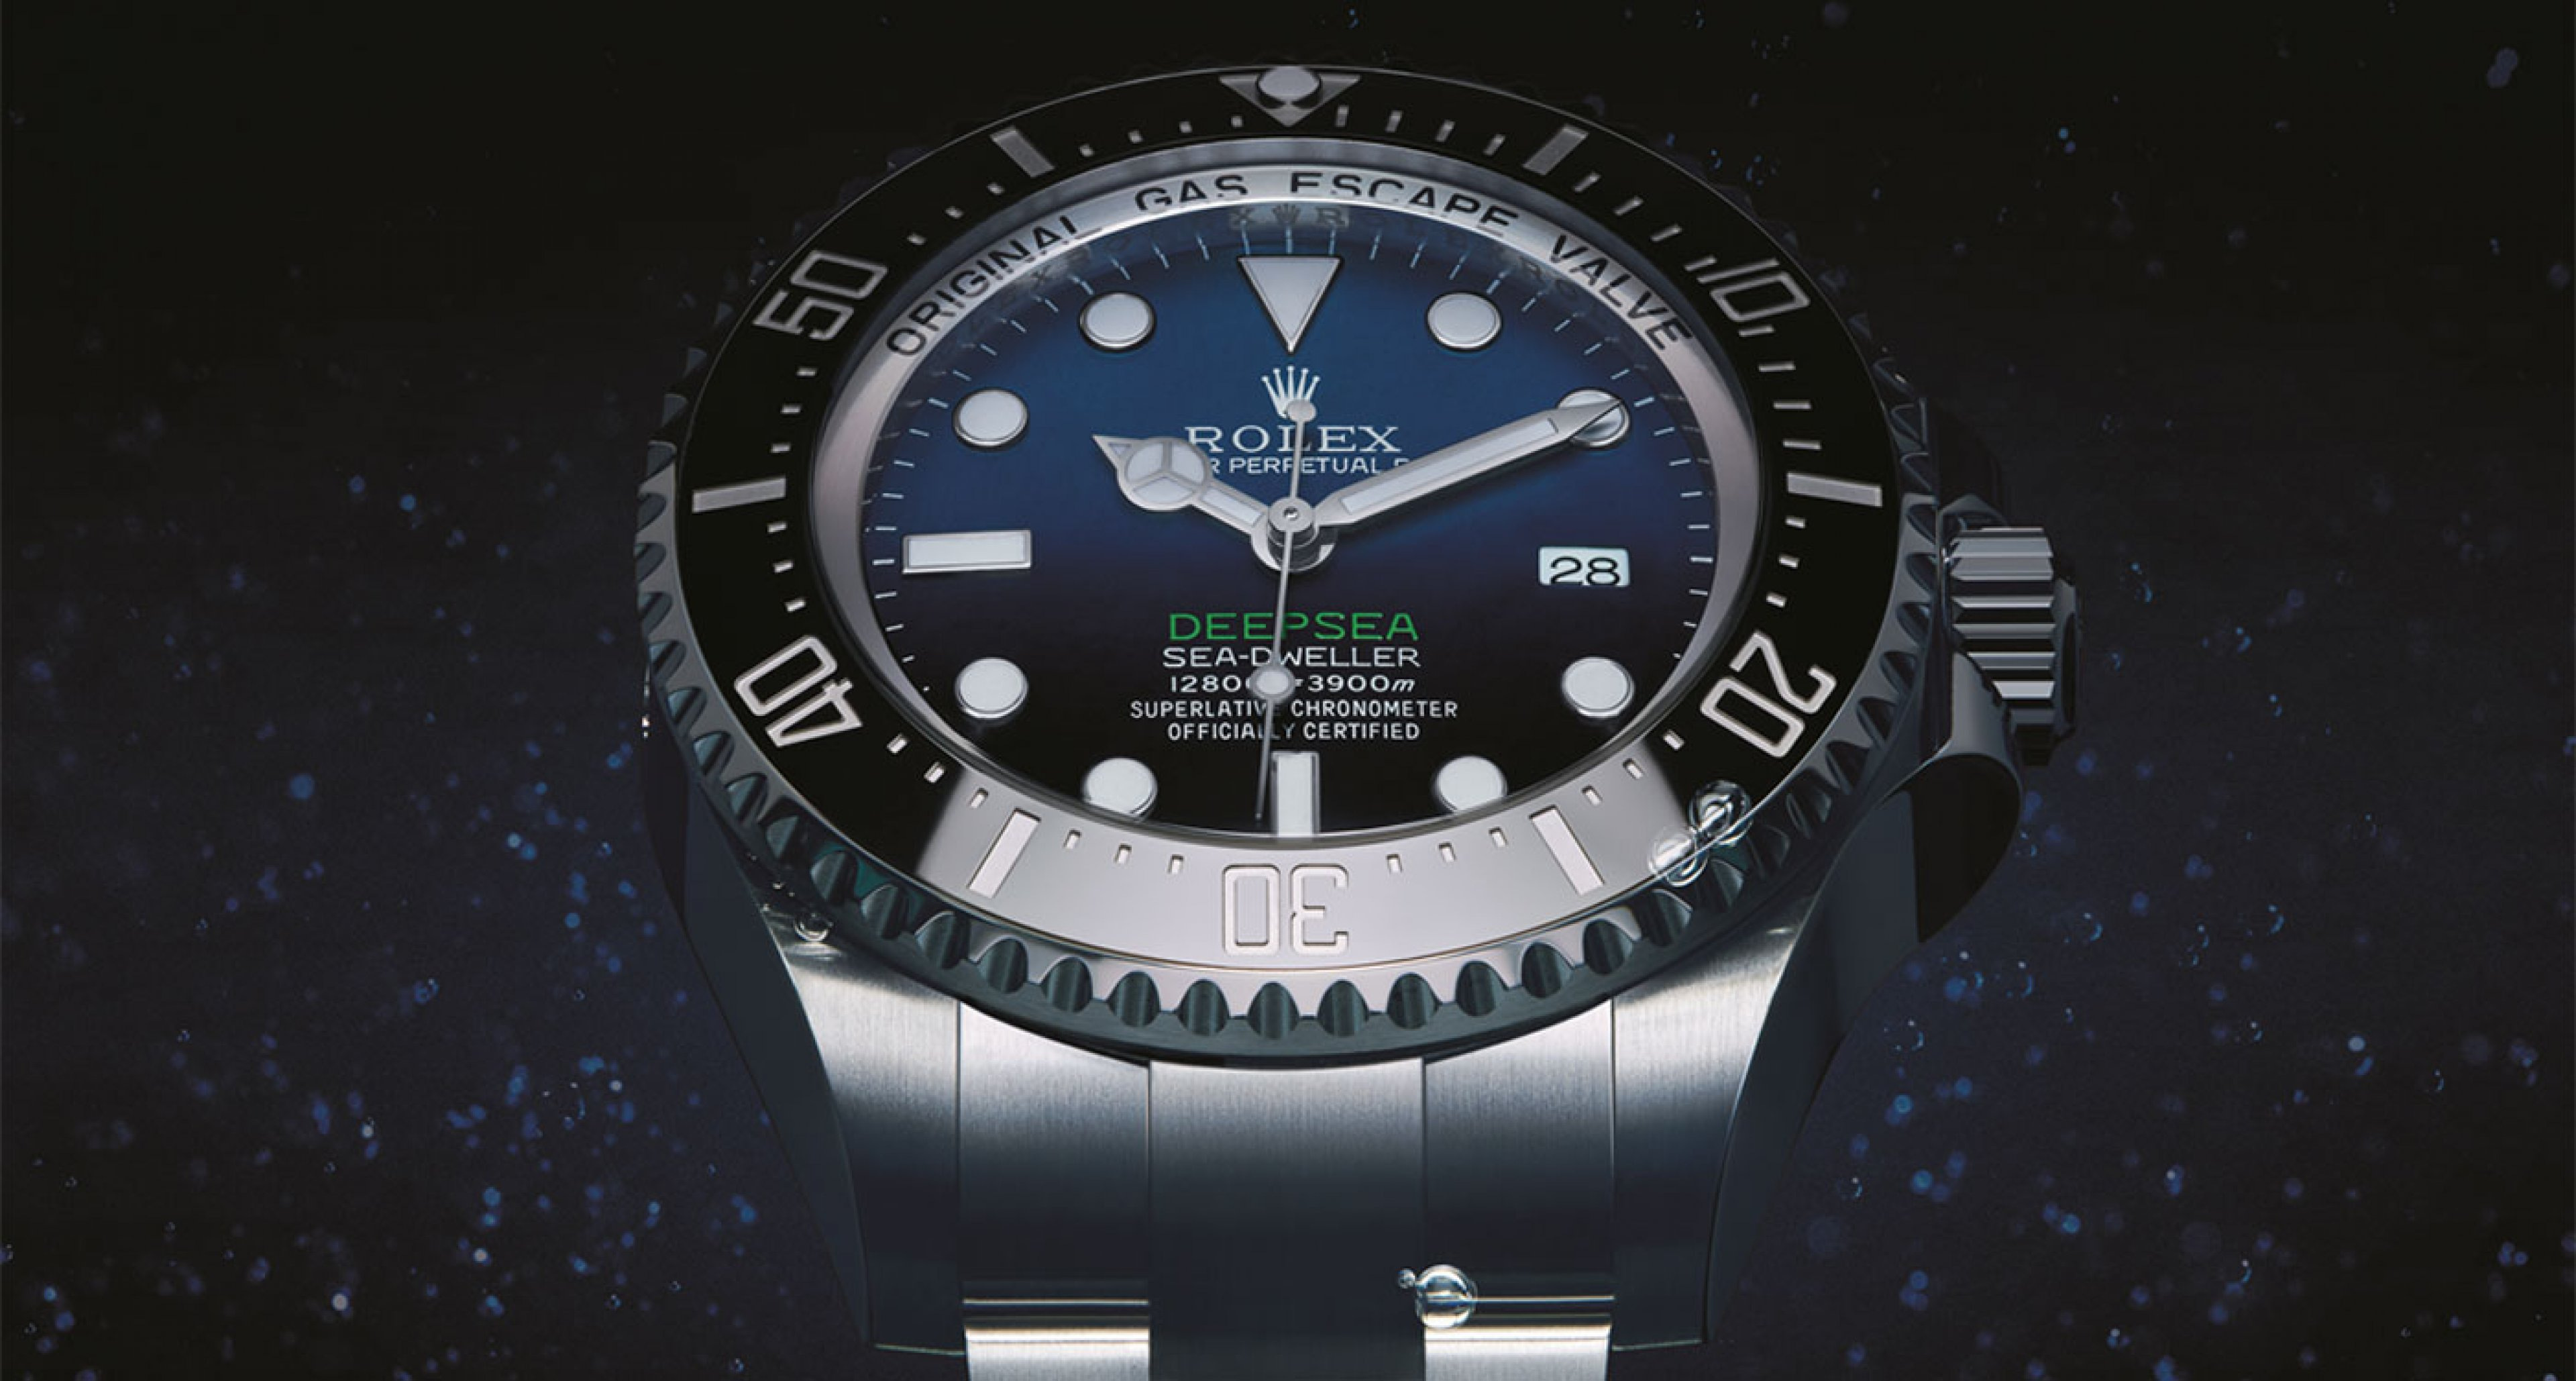 Commemorating James Cameron's historic solo dive to the deepest place on earth: the bottom of the Mariana Trench